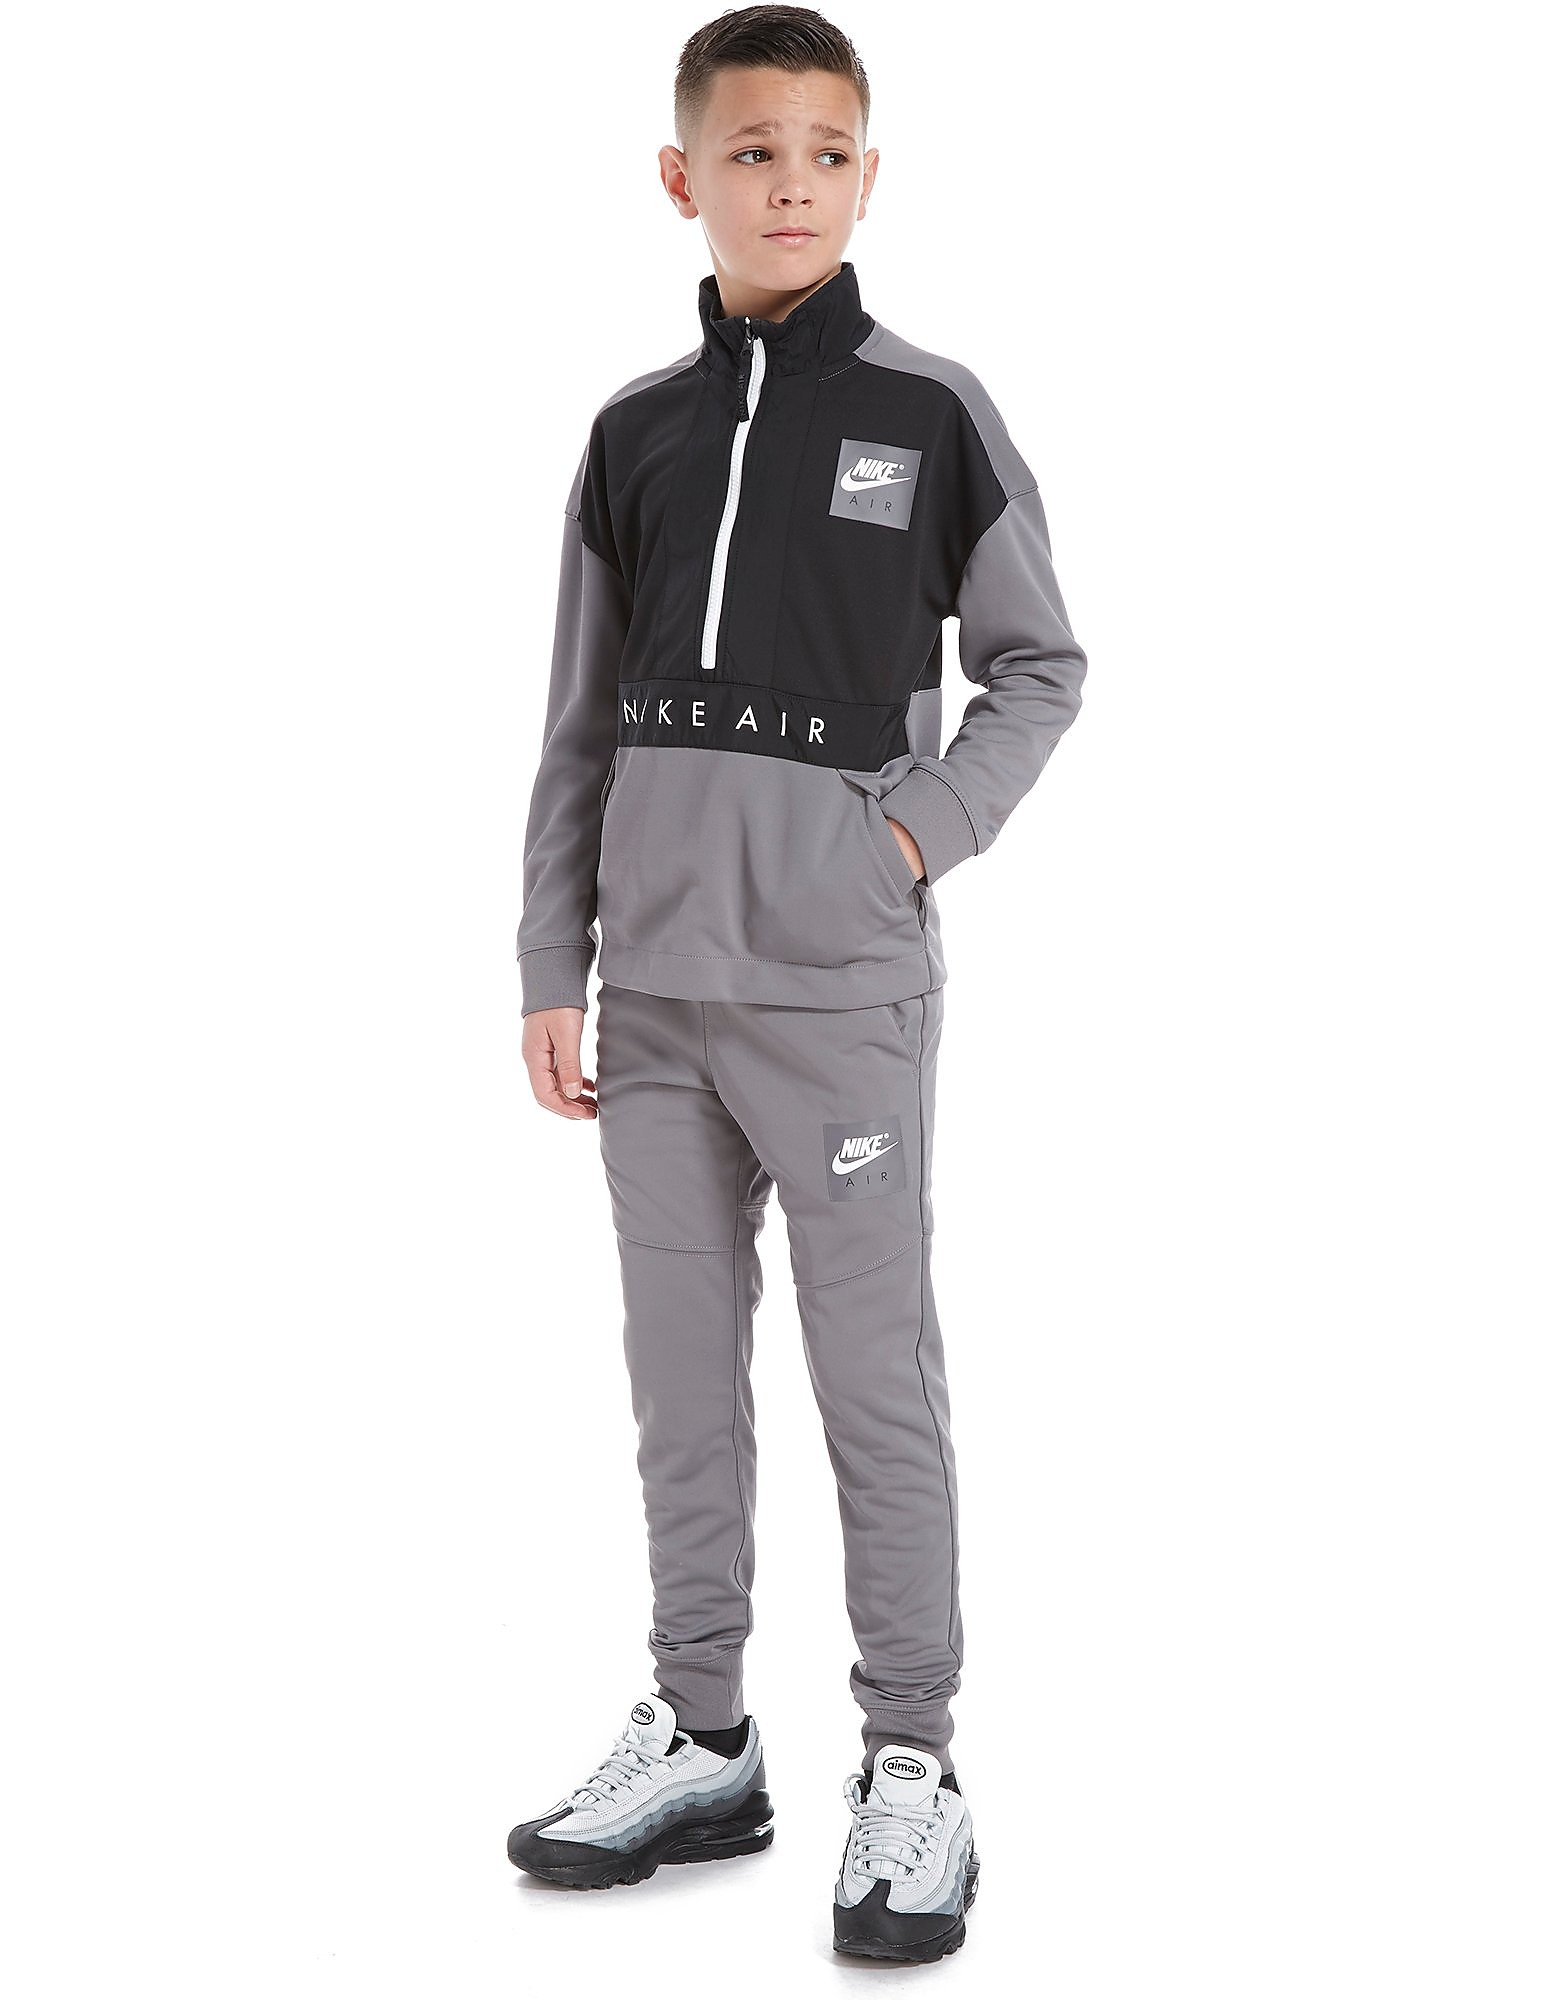 Nike Air 1/4 Zip Tuta Junior